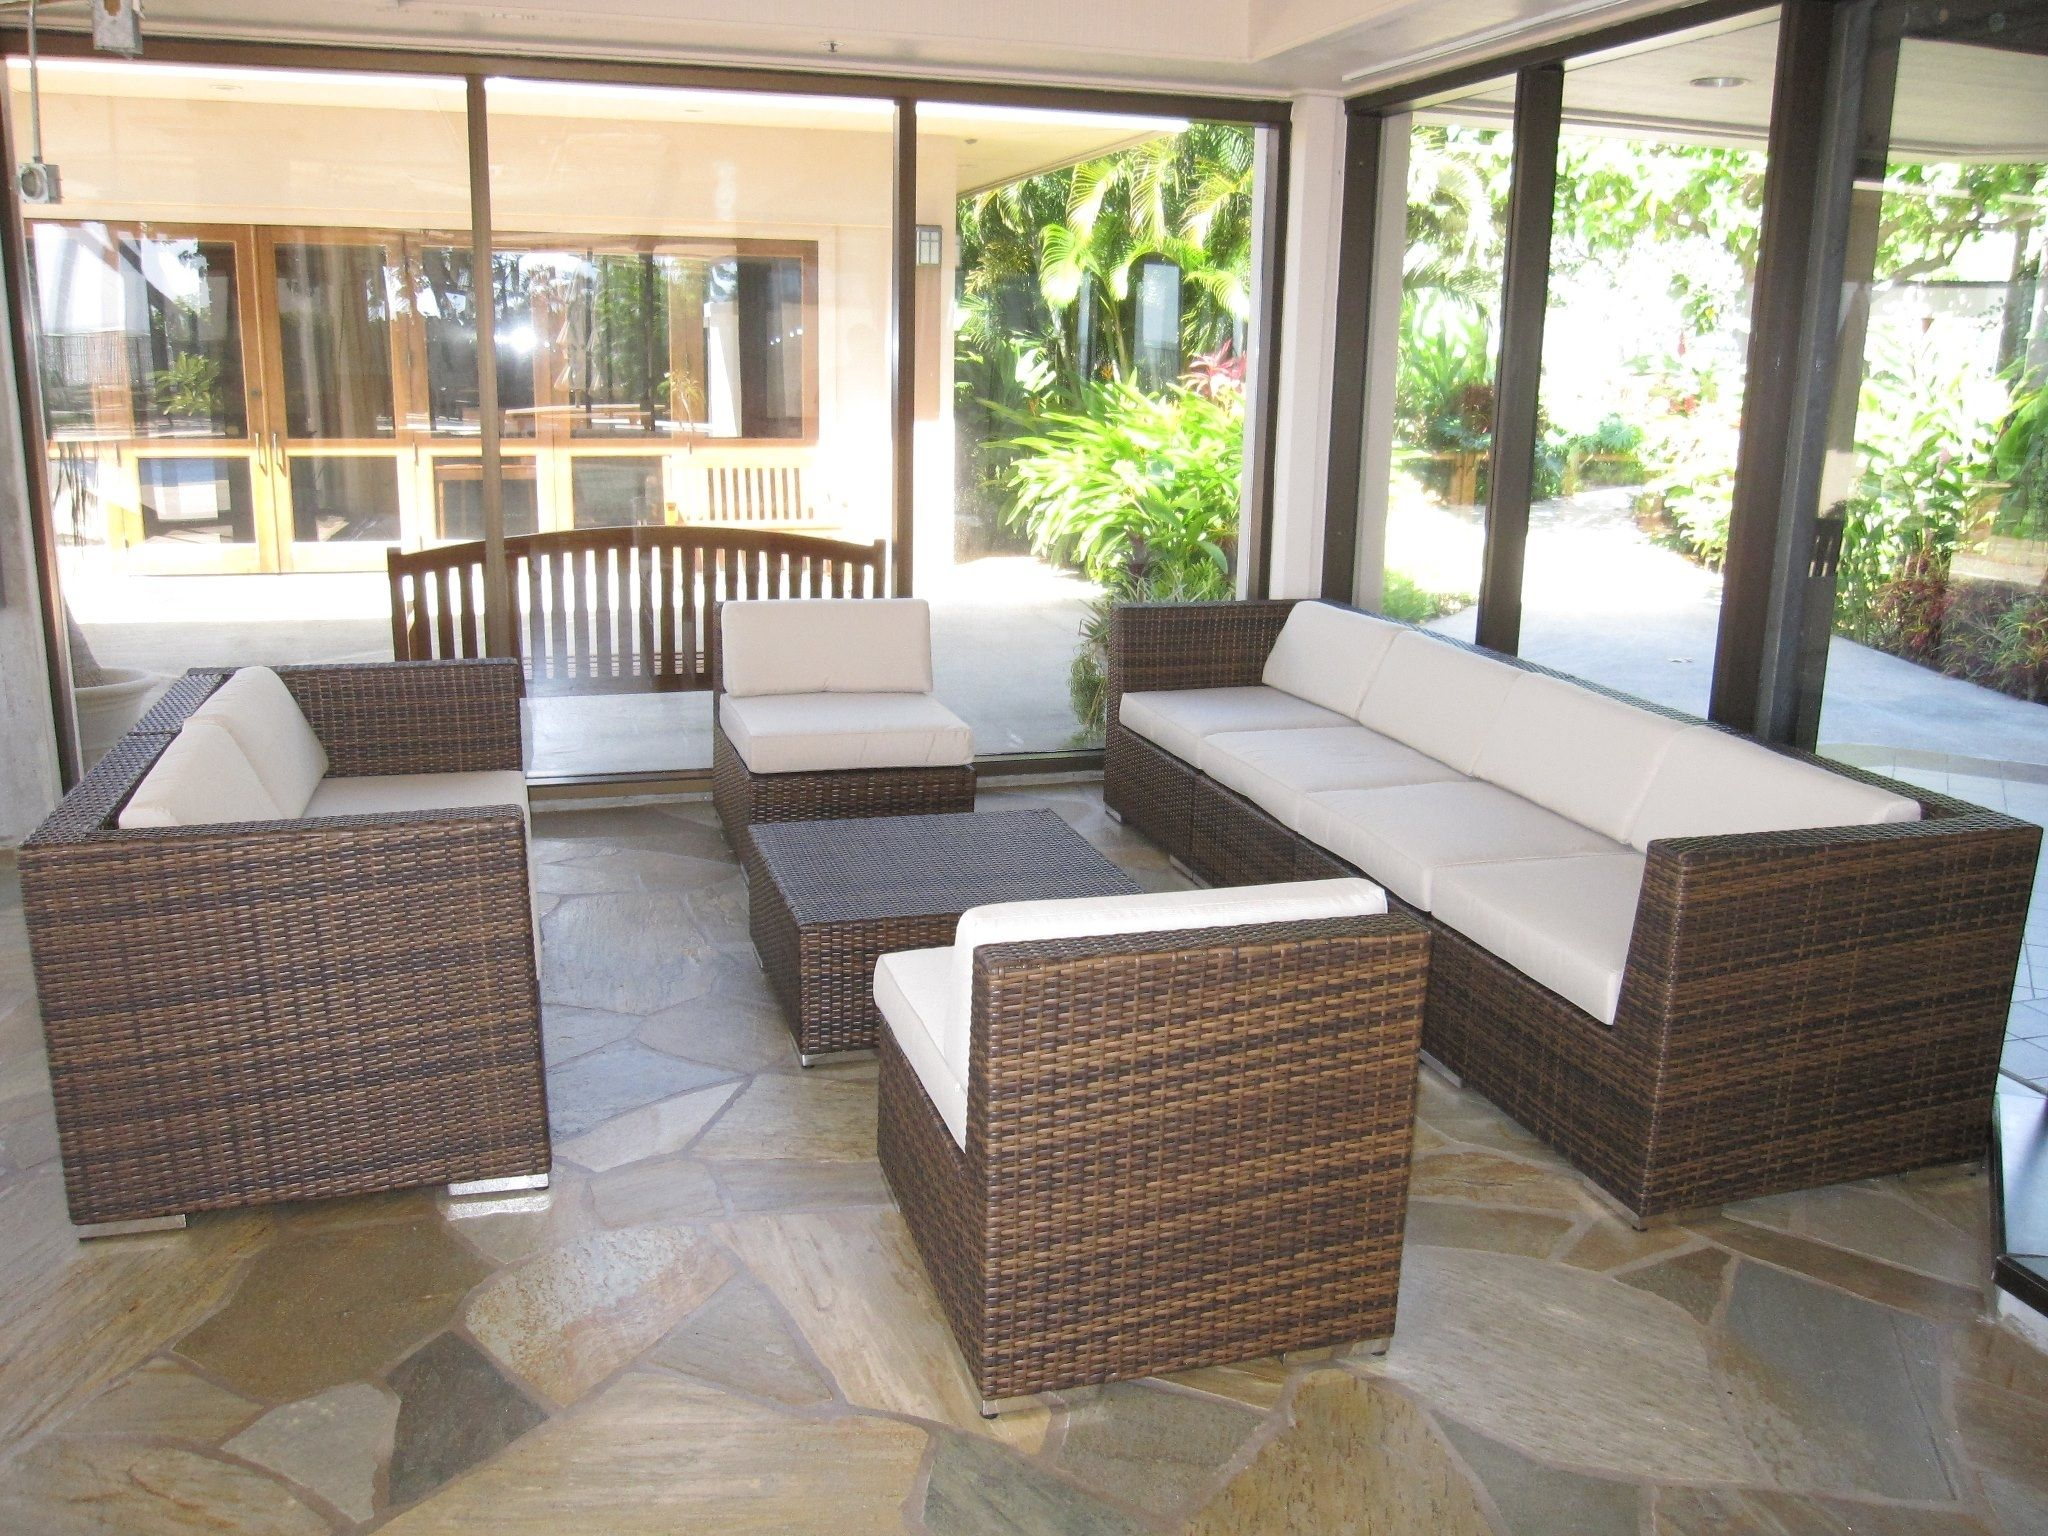 Best Patio Furniture Raleigh 21 Endearing Patio Furniture Raleigh Nc Modern Patio Furniture Outdoor Furniture Sofa Outdoor Wicker Furniture